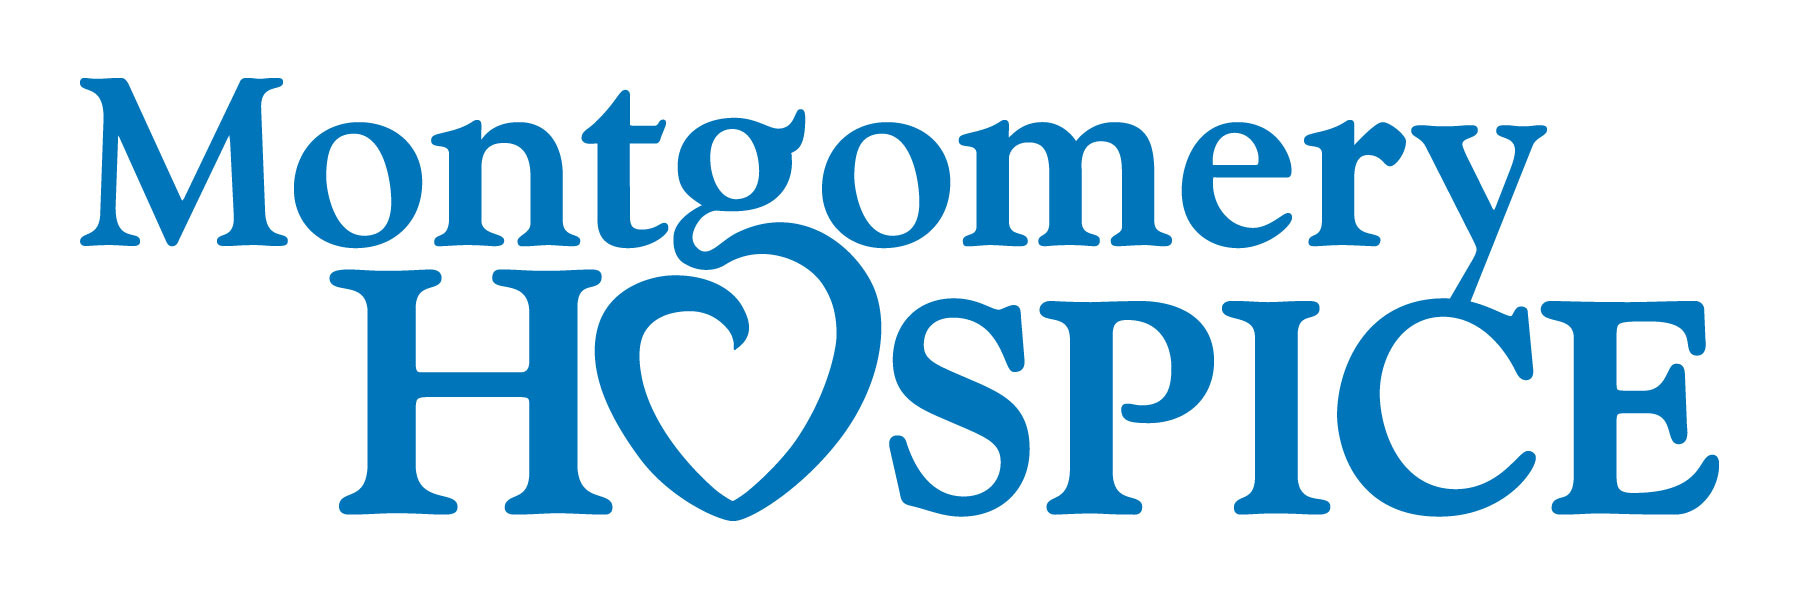 Jeff Wilson Supports The Montgomery Hospice